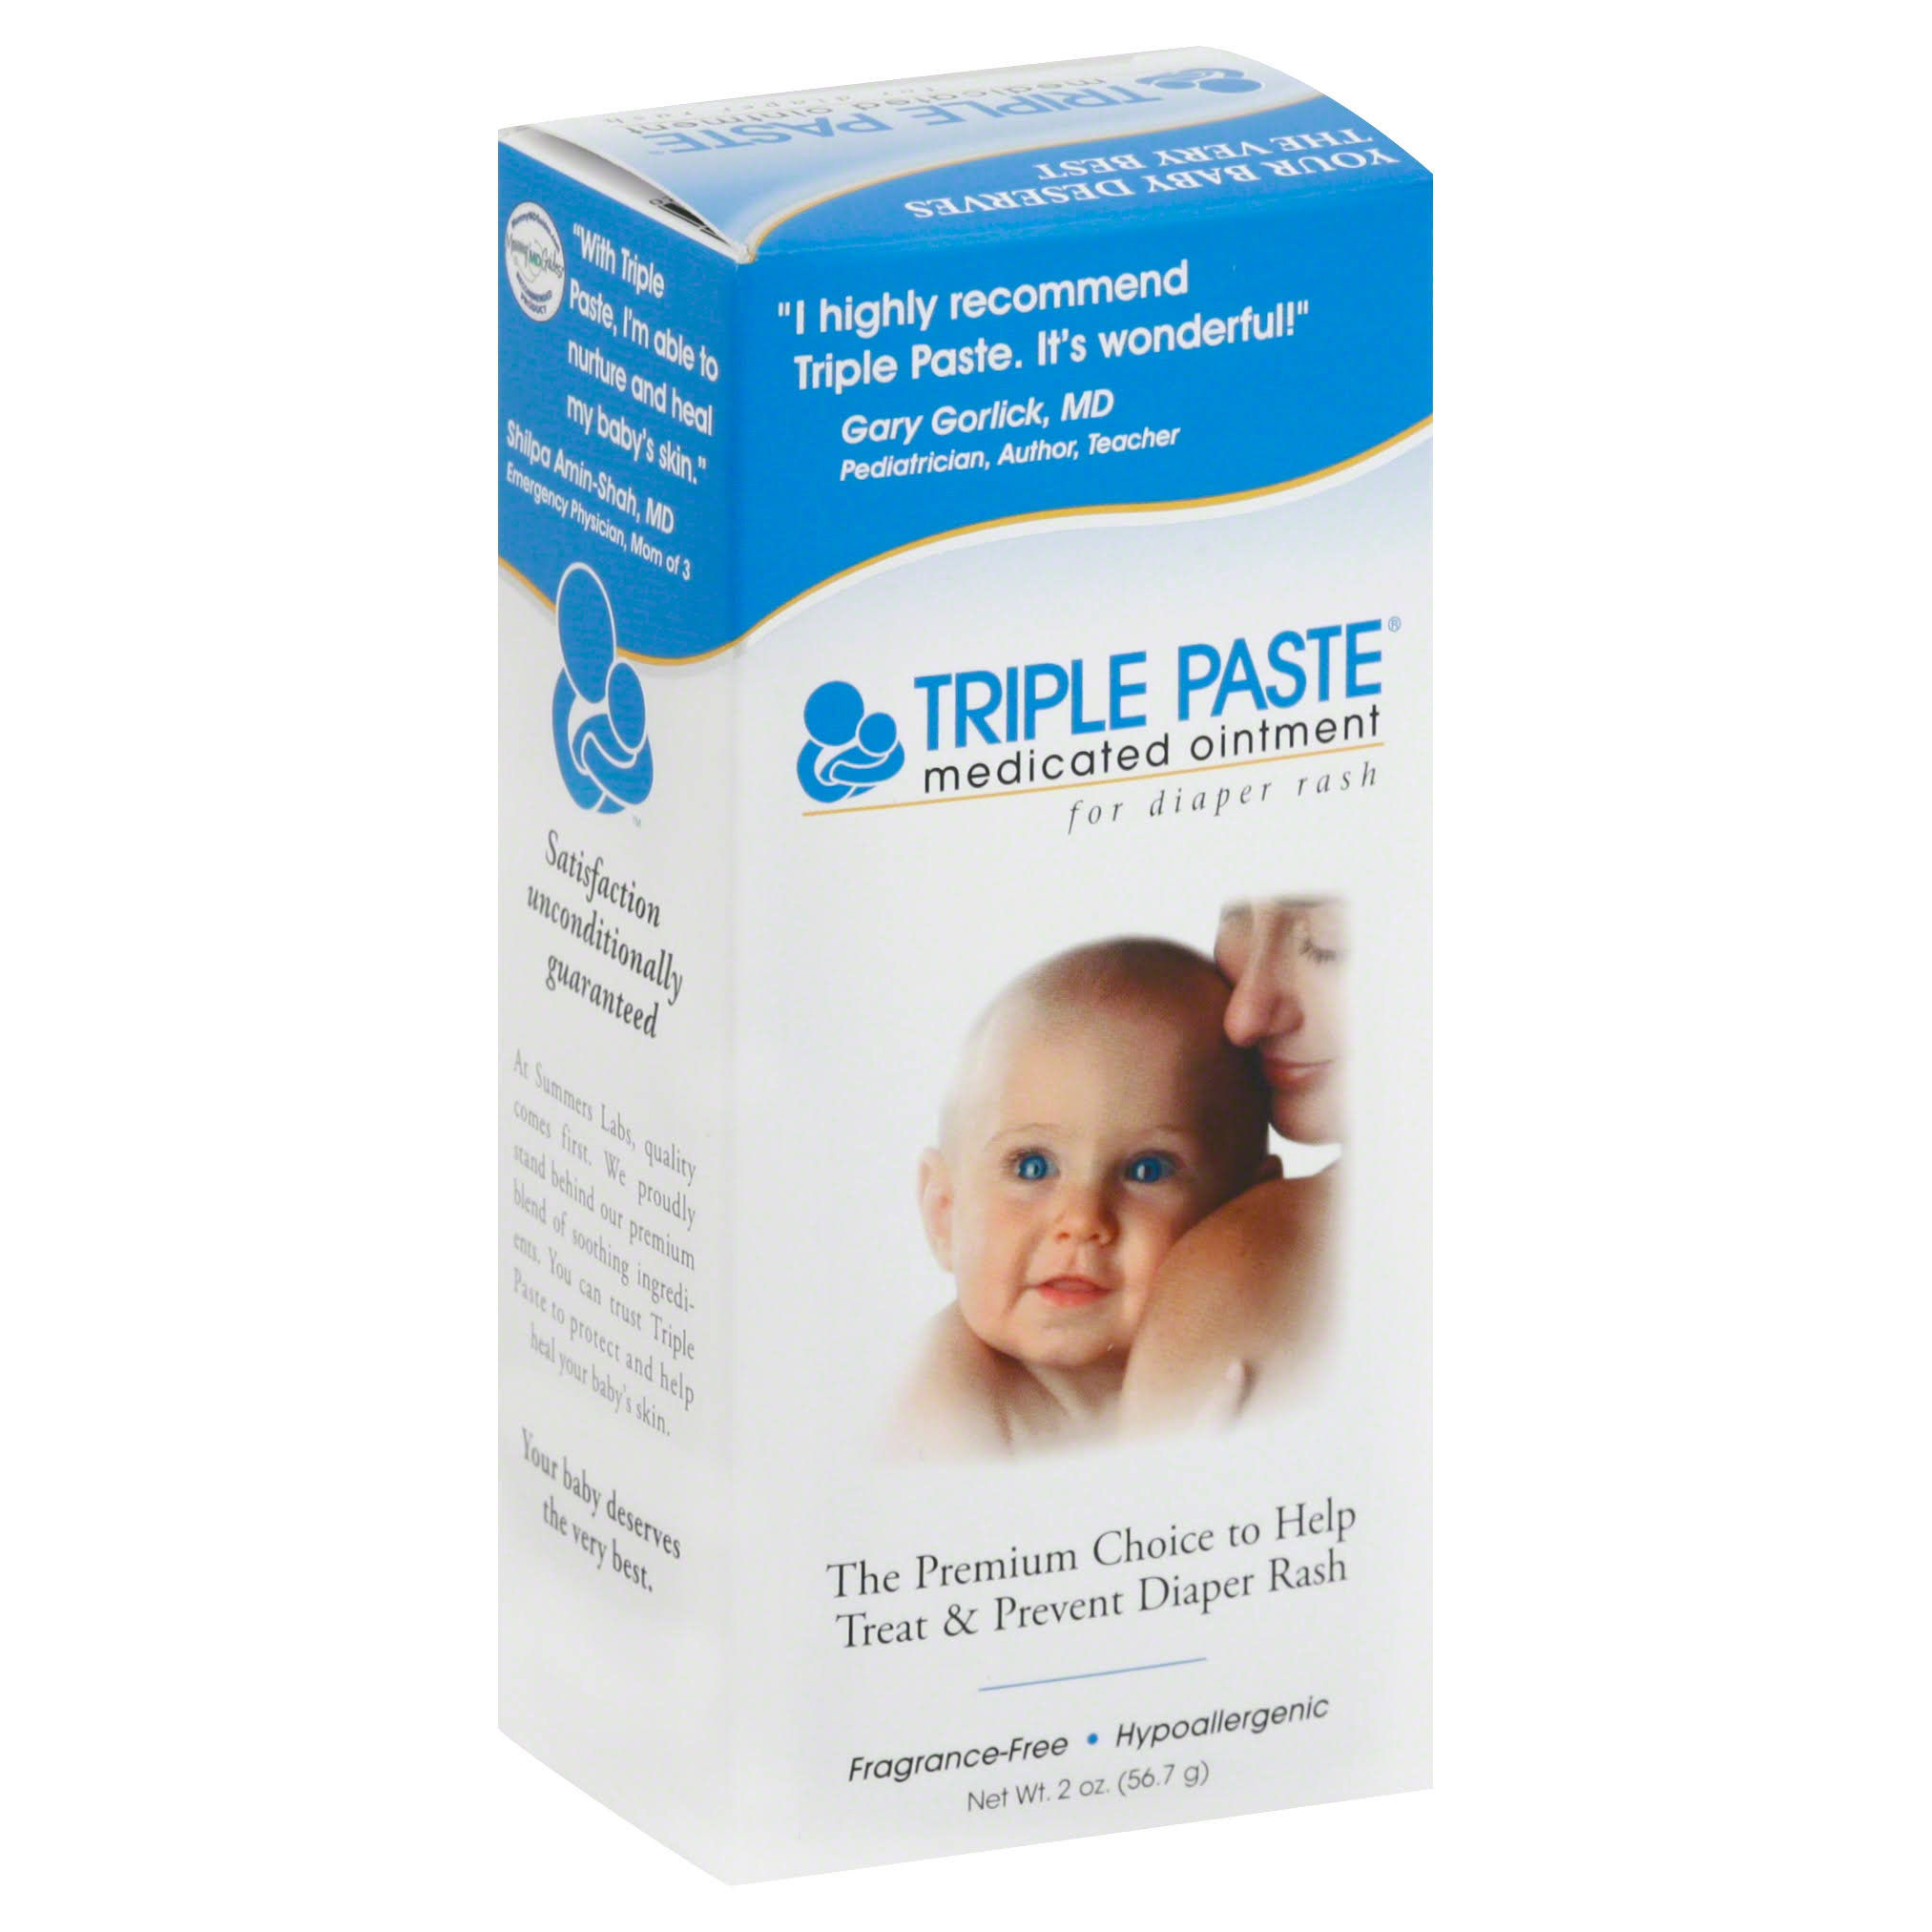 Triple Paste Medicated Ointment for Diaper Rash - 2oz